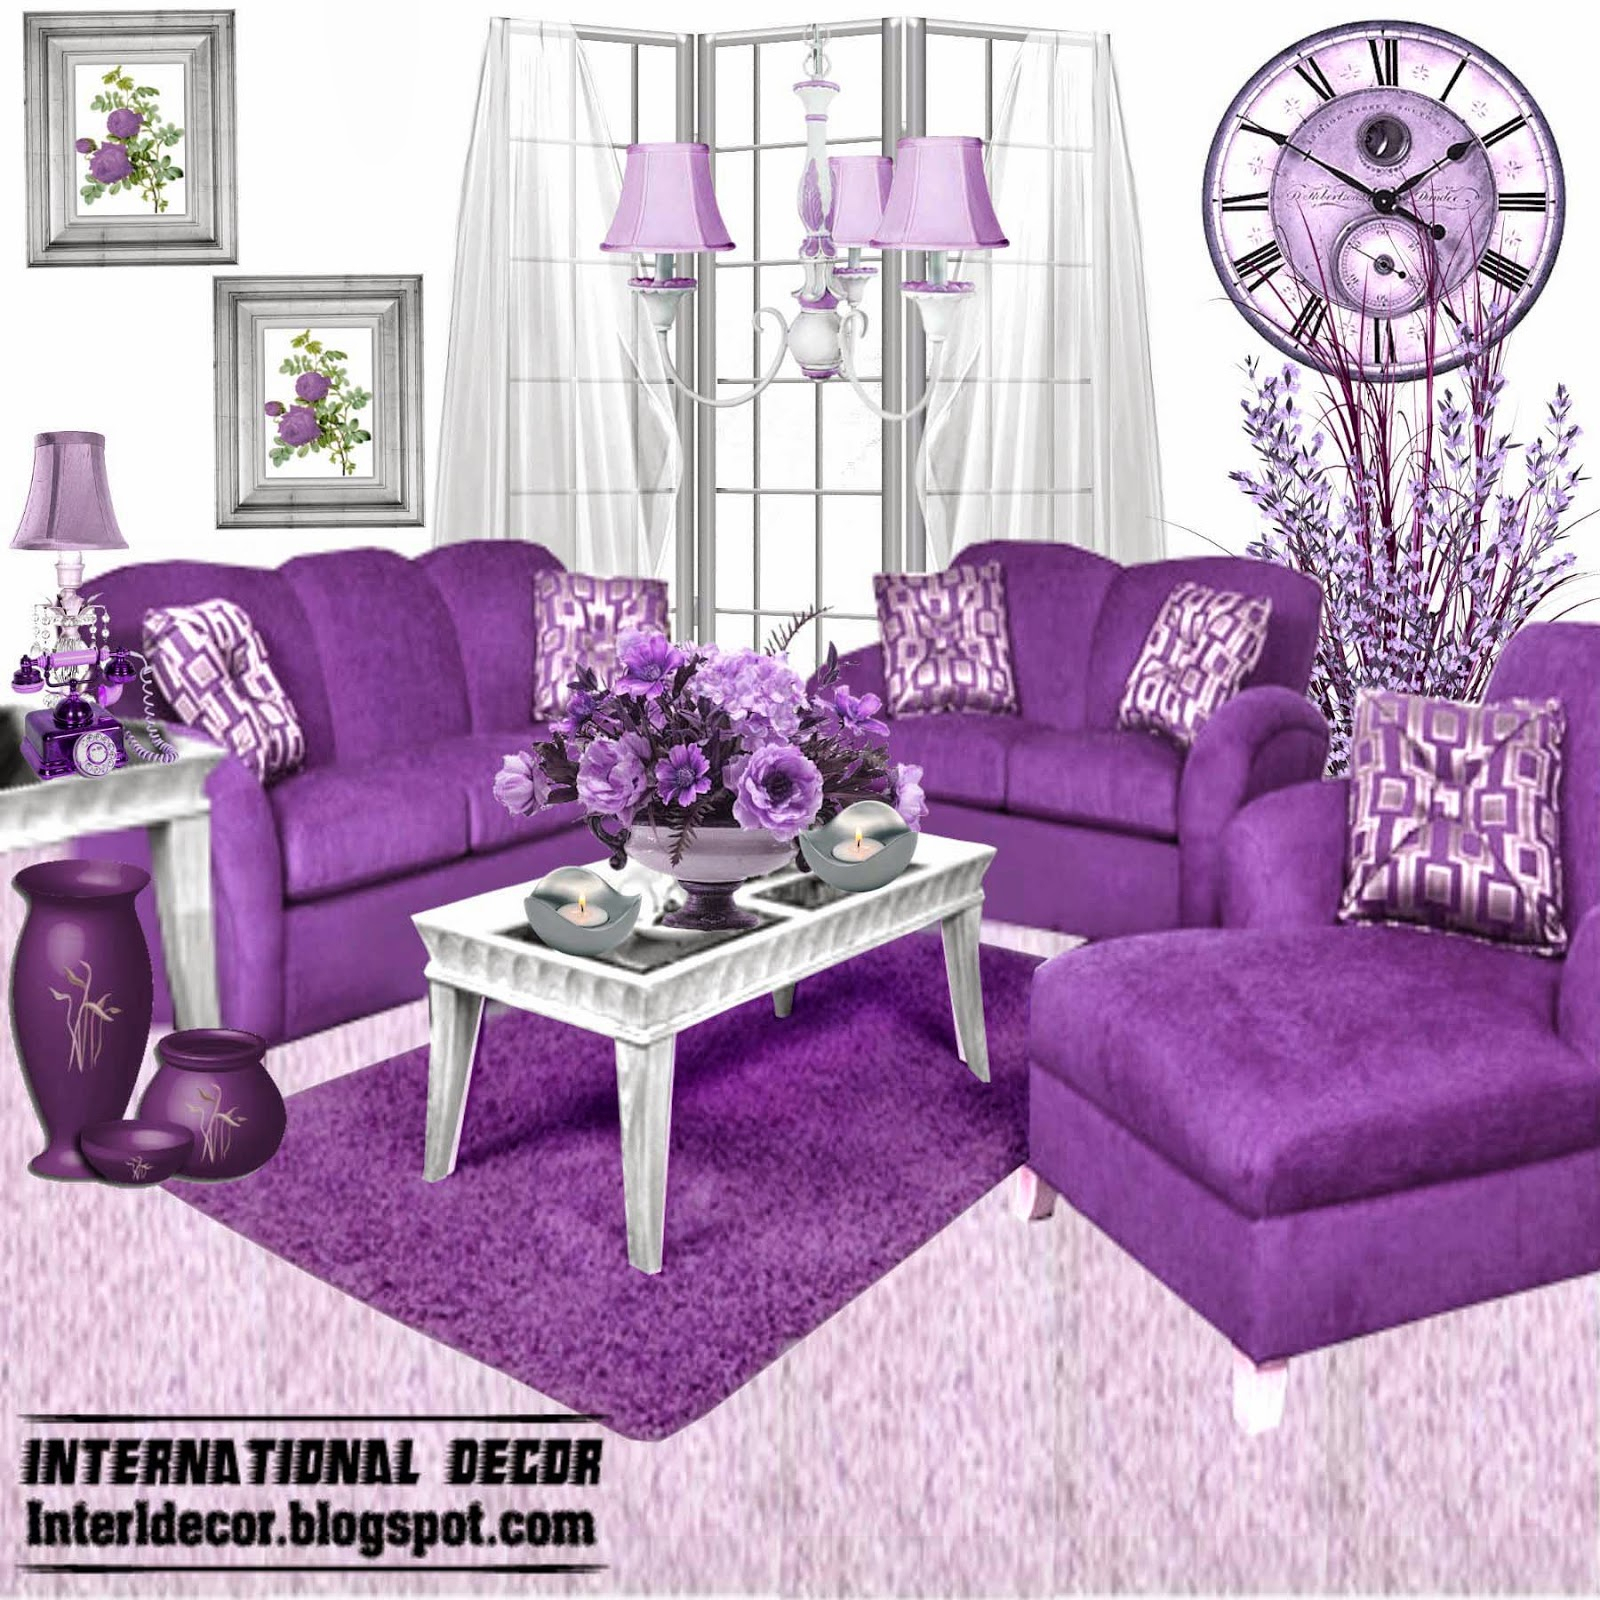 Luxury Purple Furniture, Sets, Sofas, Chairs For Living Inside Living Room Sofa And Chair Sets (View 2 of 15)